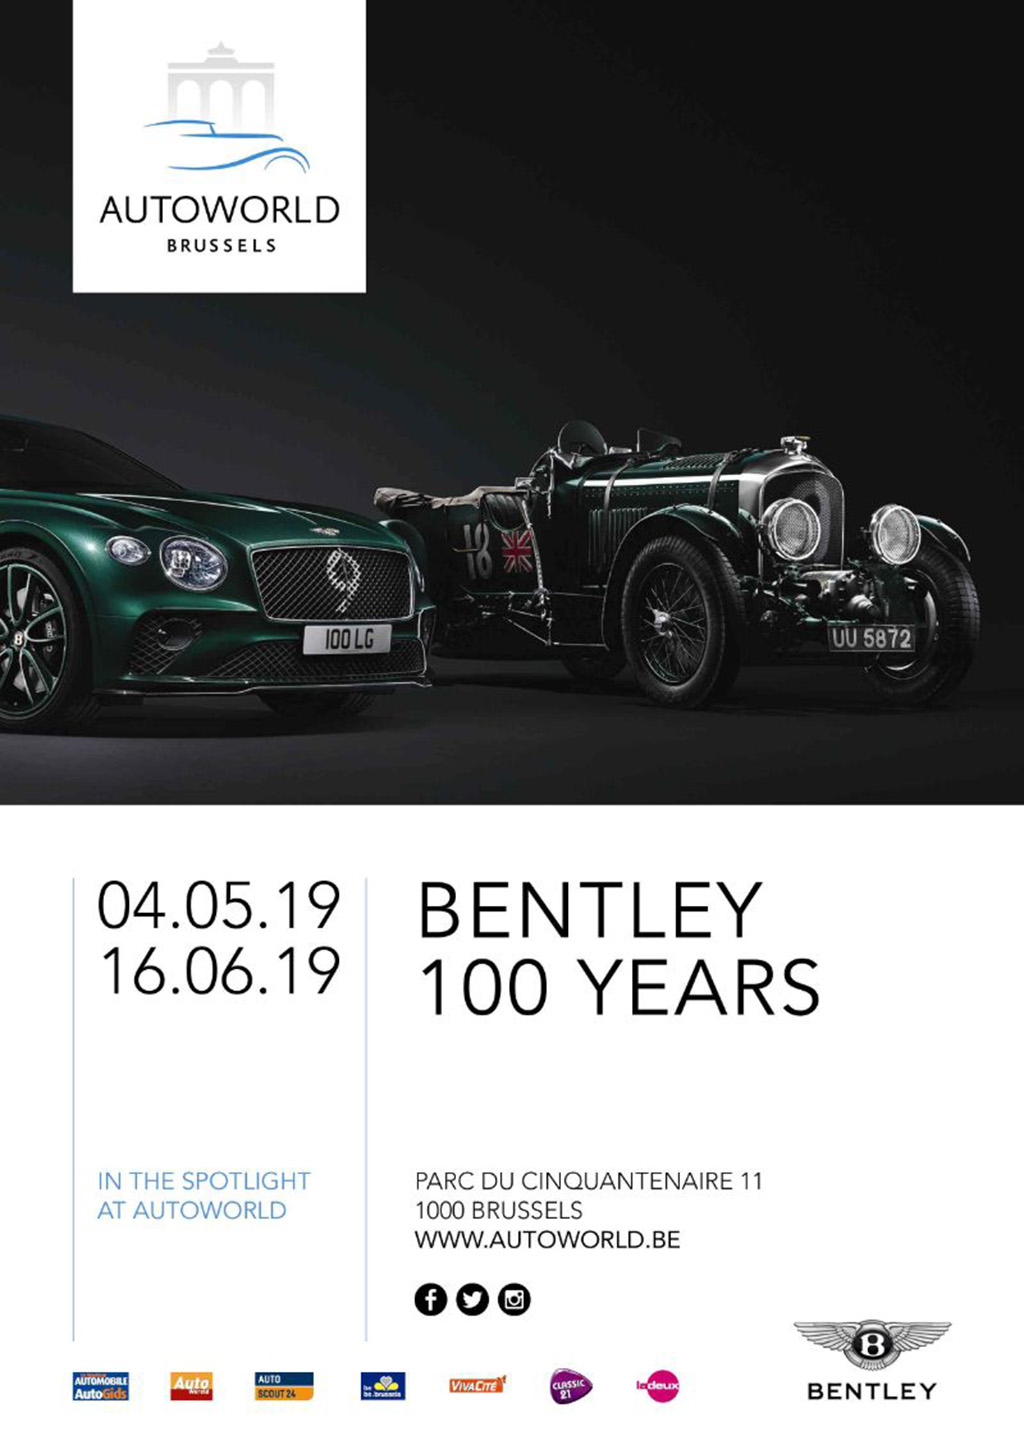 Bentley Autoworld Brussels